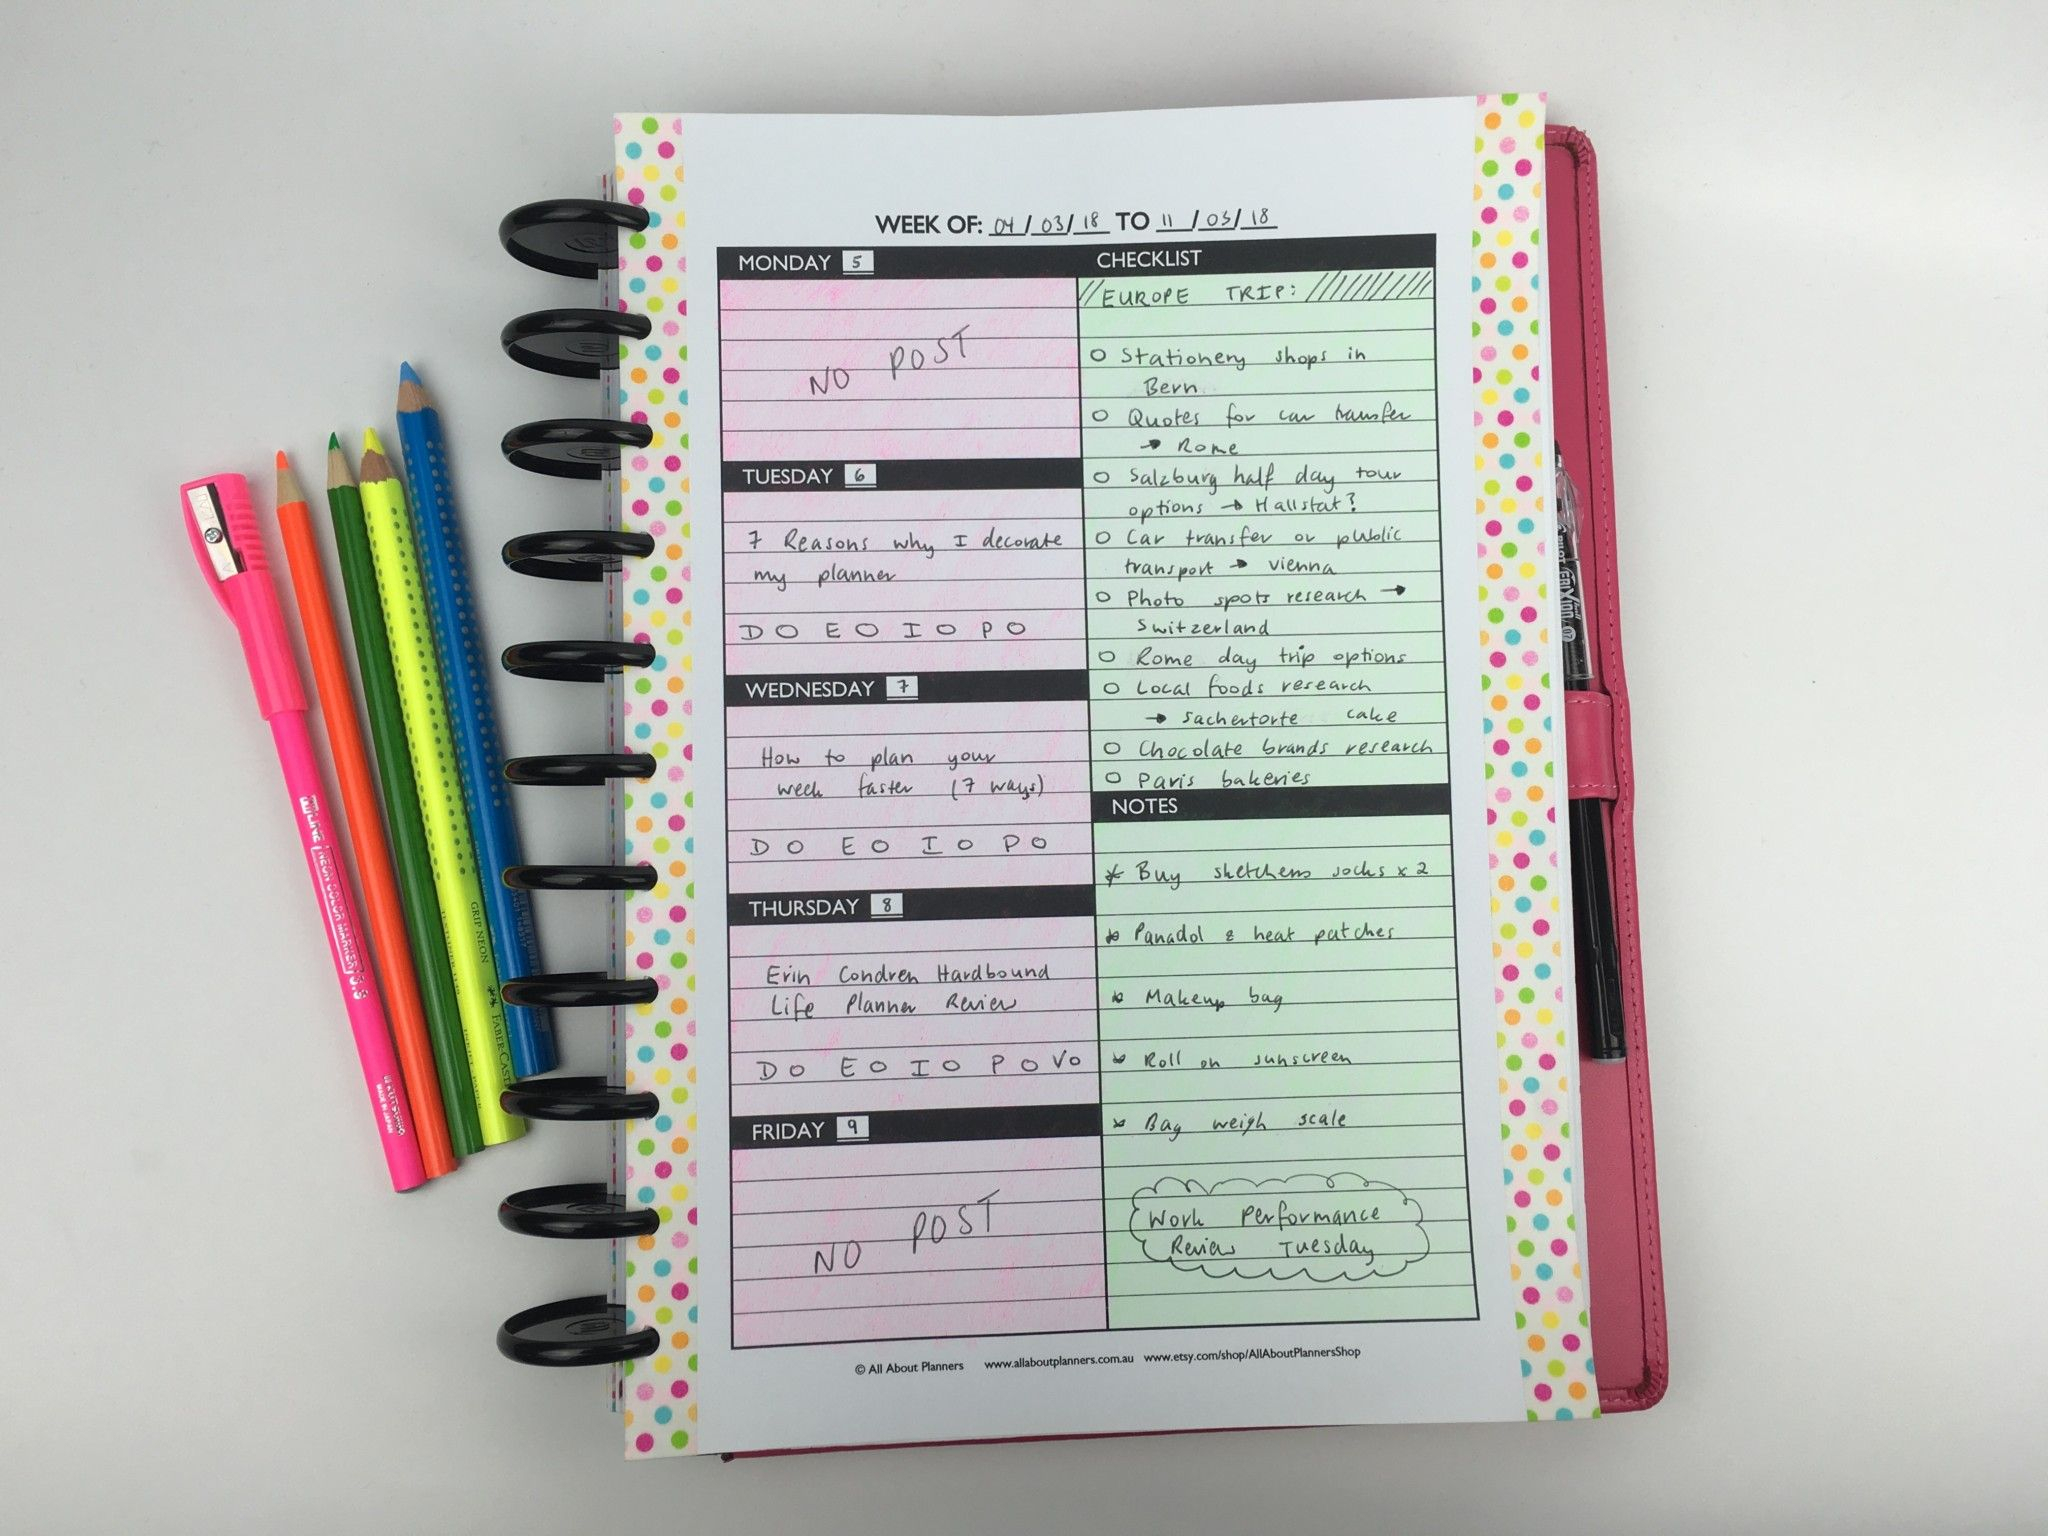 Minimalist Planner Decorating And Color Coding Using Pencils throughout All About Planners